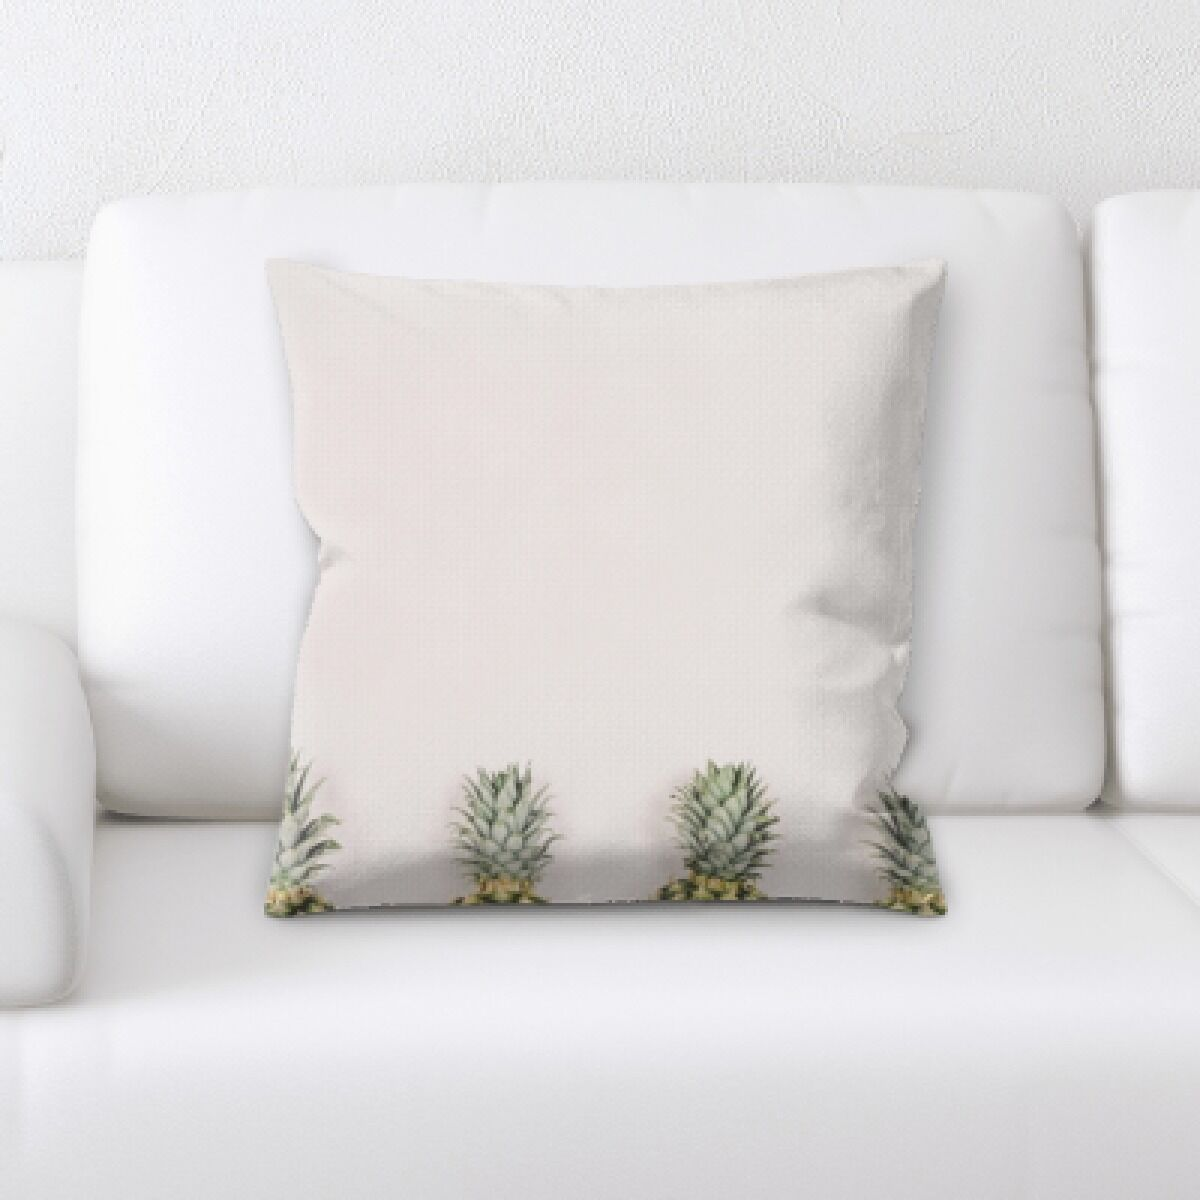 Gullane Fruits Half Pineapples on a White Background Throw Pillow